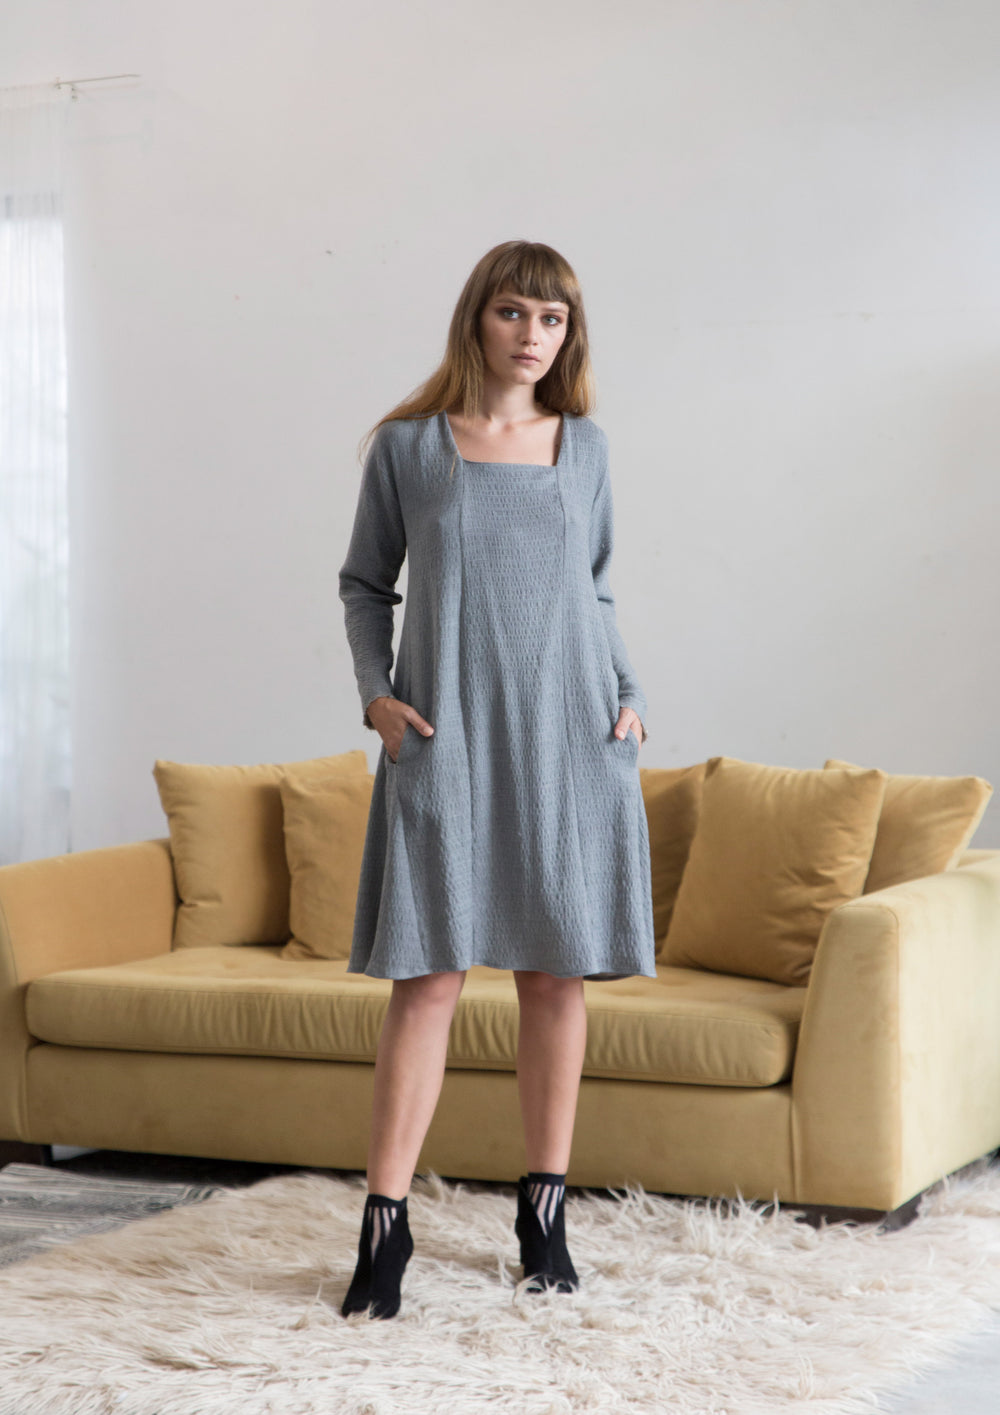 Squerd Neck Line Flowy Dress